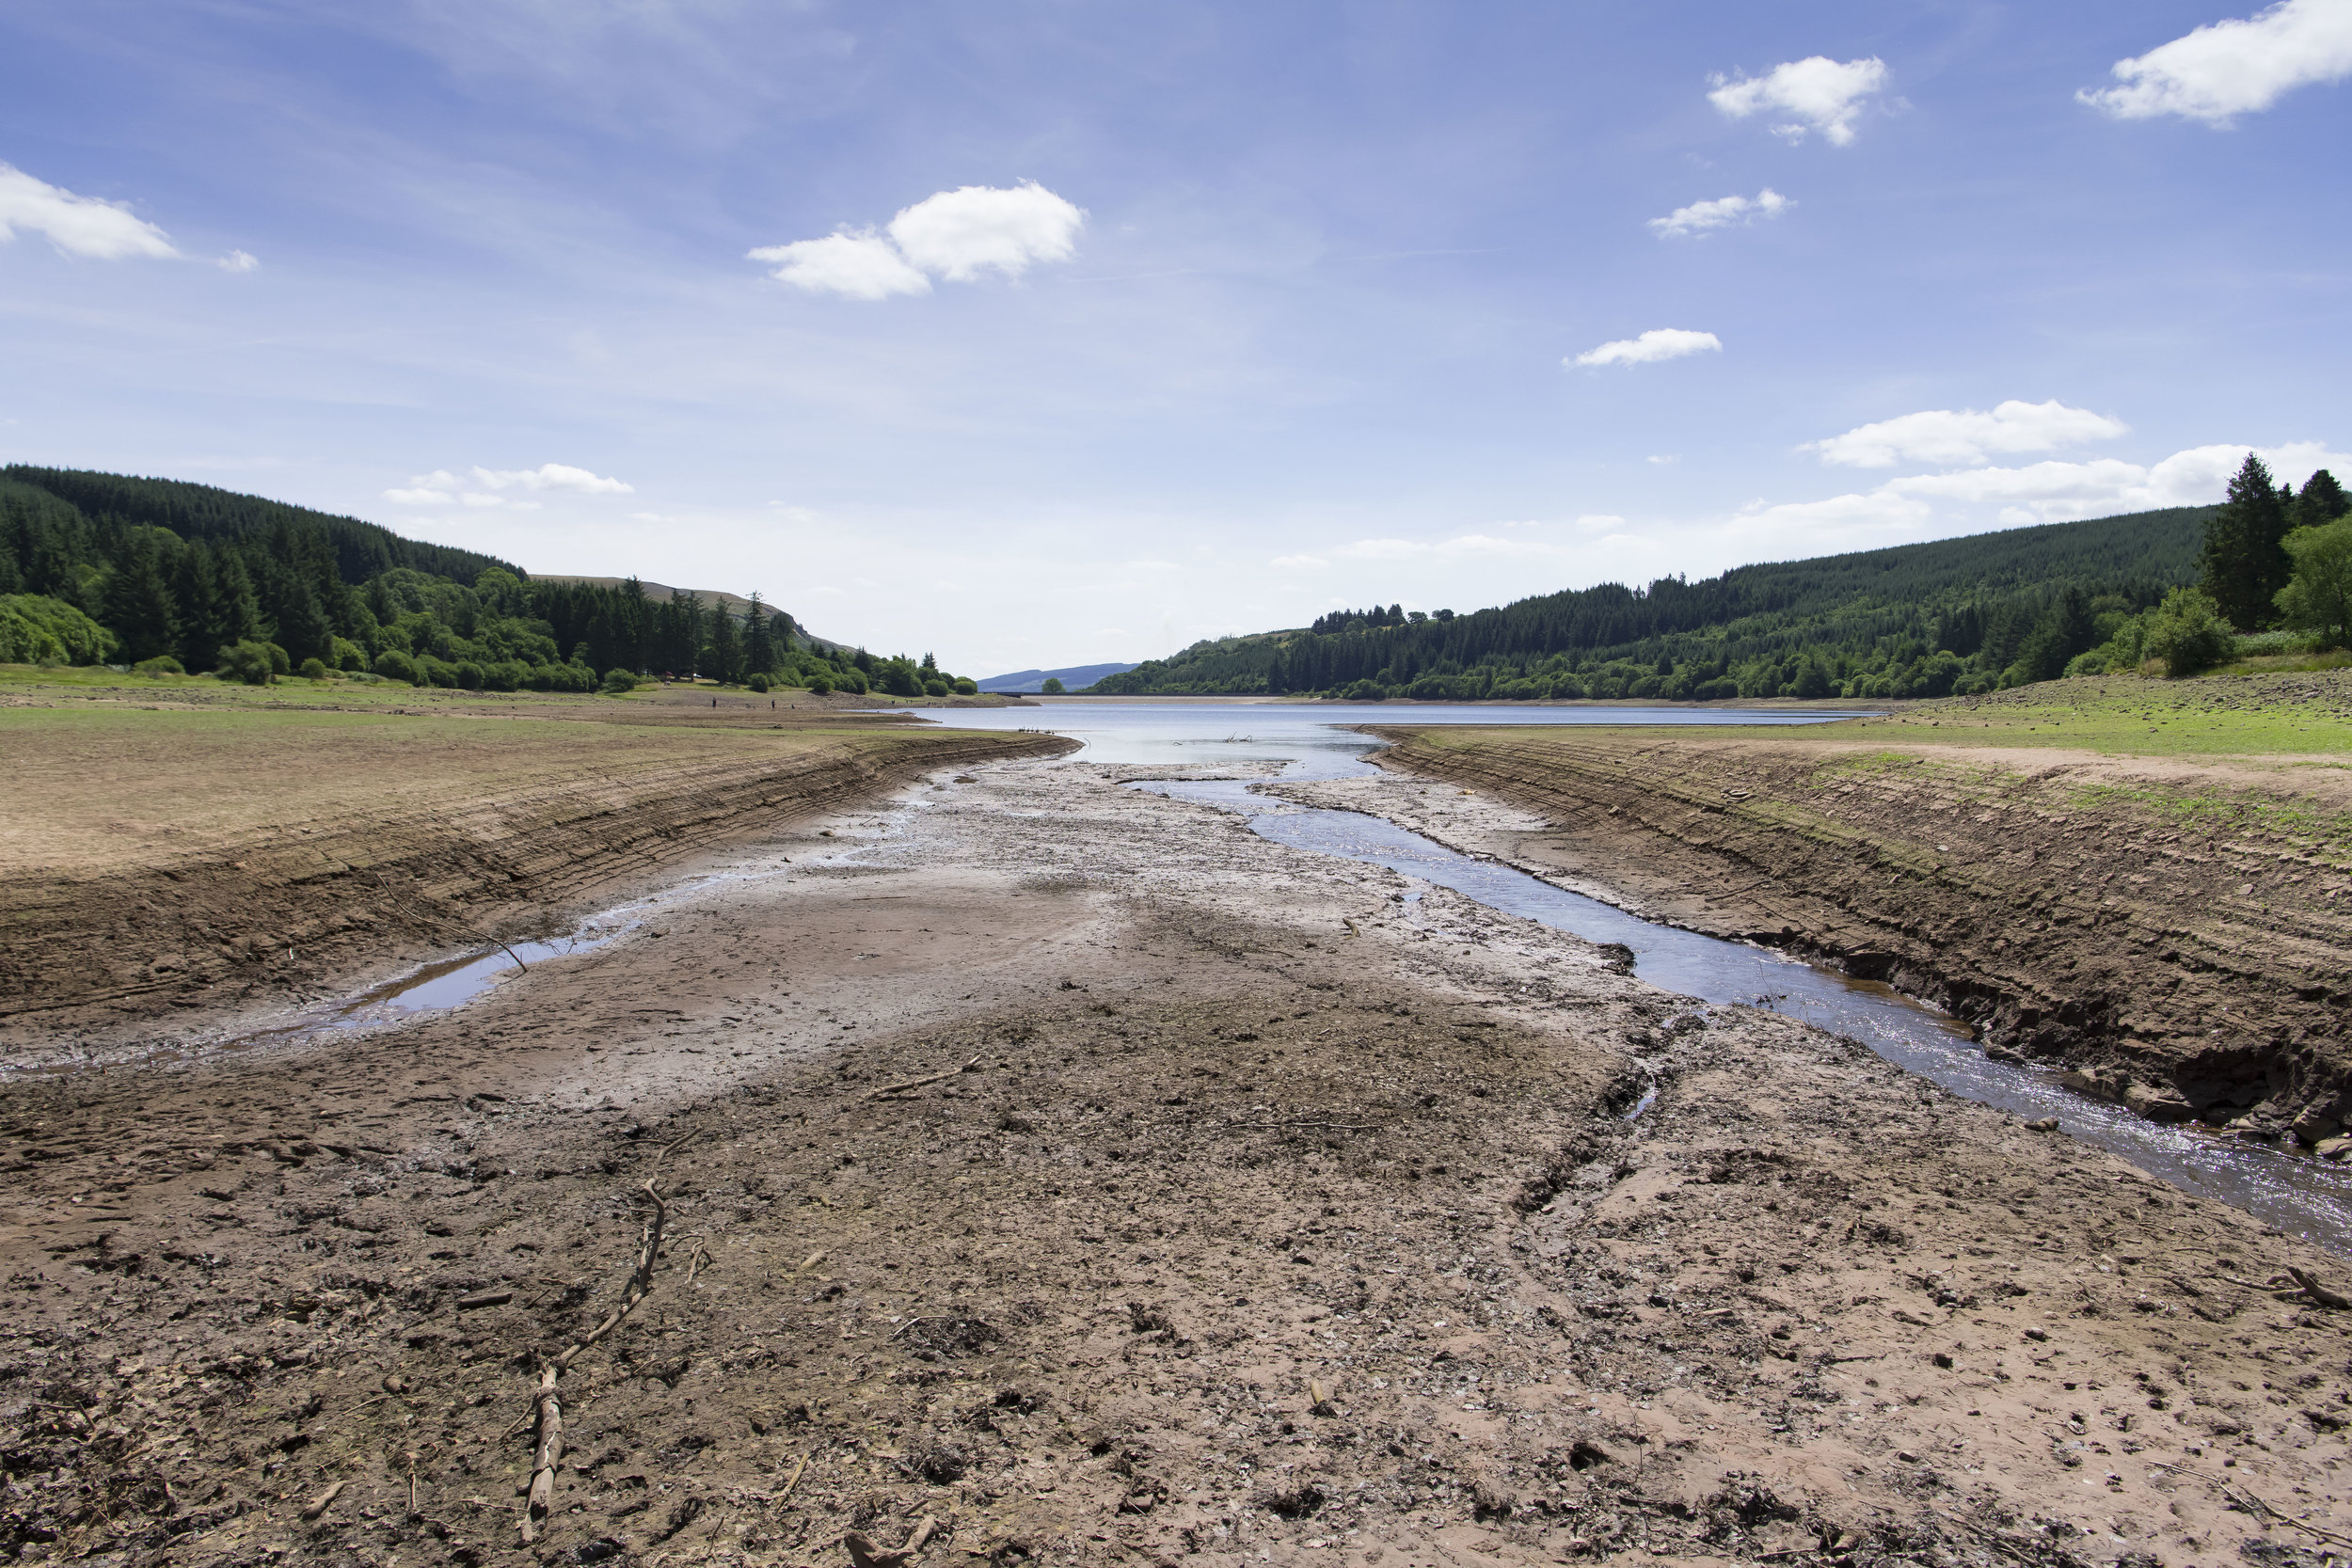 MERTHYR TYDFIL, WALES - JULY 25: A general view of the Llwyn-on Reservoir, owned by Welsh Water, in the Taf Fawr valley on July 25, 2018 in Merthyr Tydfil, Wales. The lack of rainfall over the last few weeks combined with record breaking temperatures is having a dramatic effect on water levels in reservoirs. (Photo by Matthew Horwood/Getty Images)